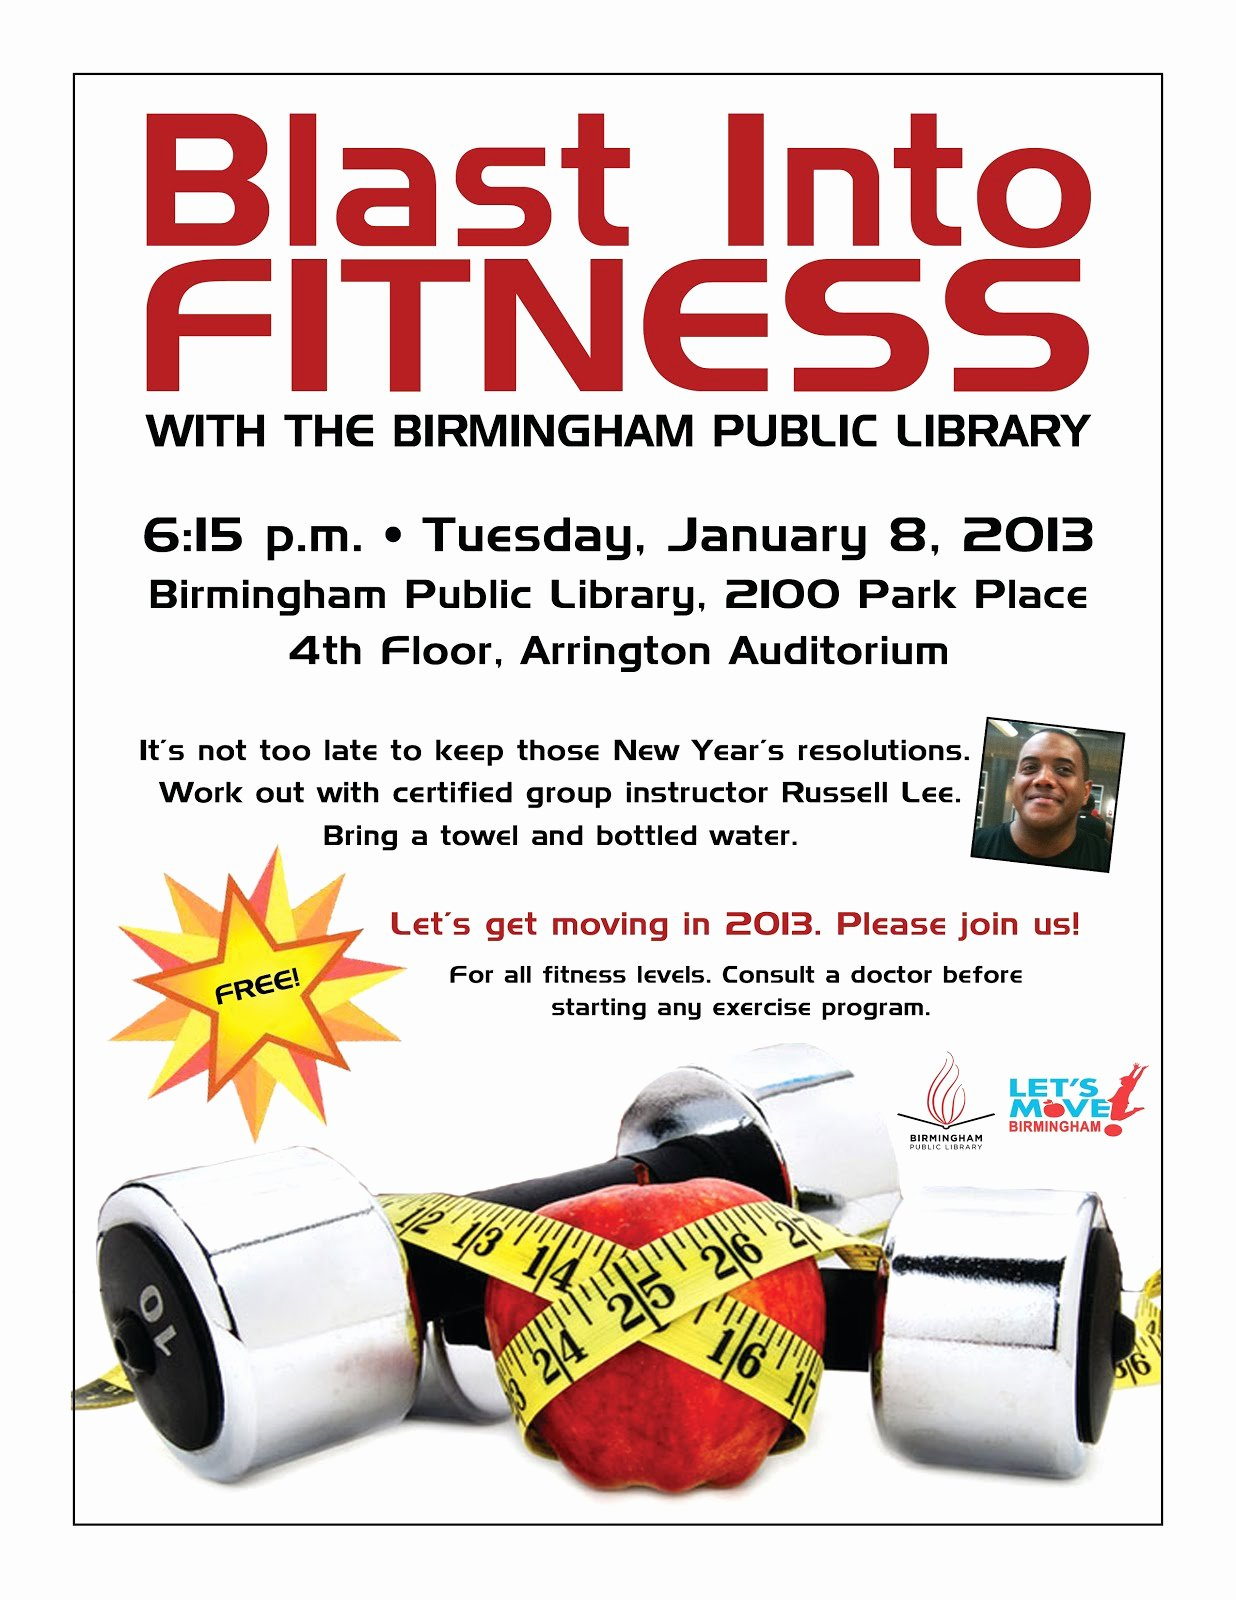 Free Fitness Flyer Template Luxury Birmingham Public Library Blast Into Fitness with A Free